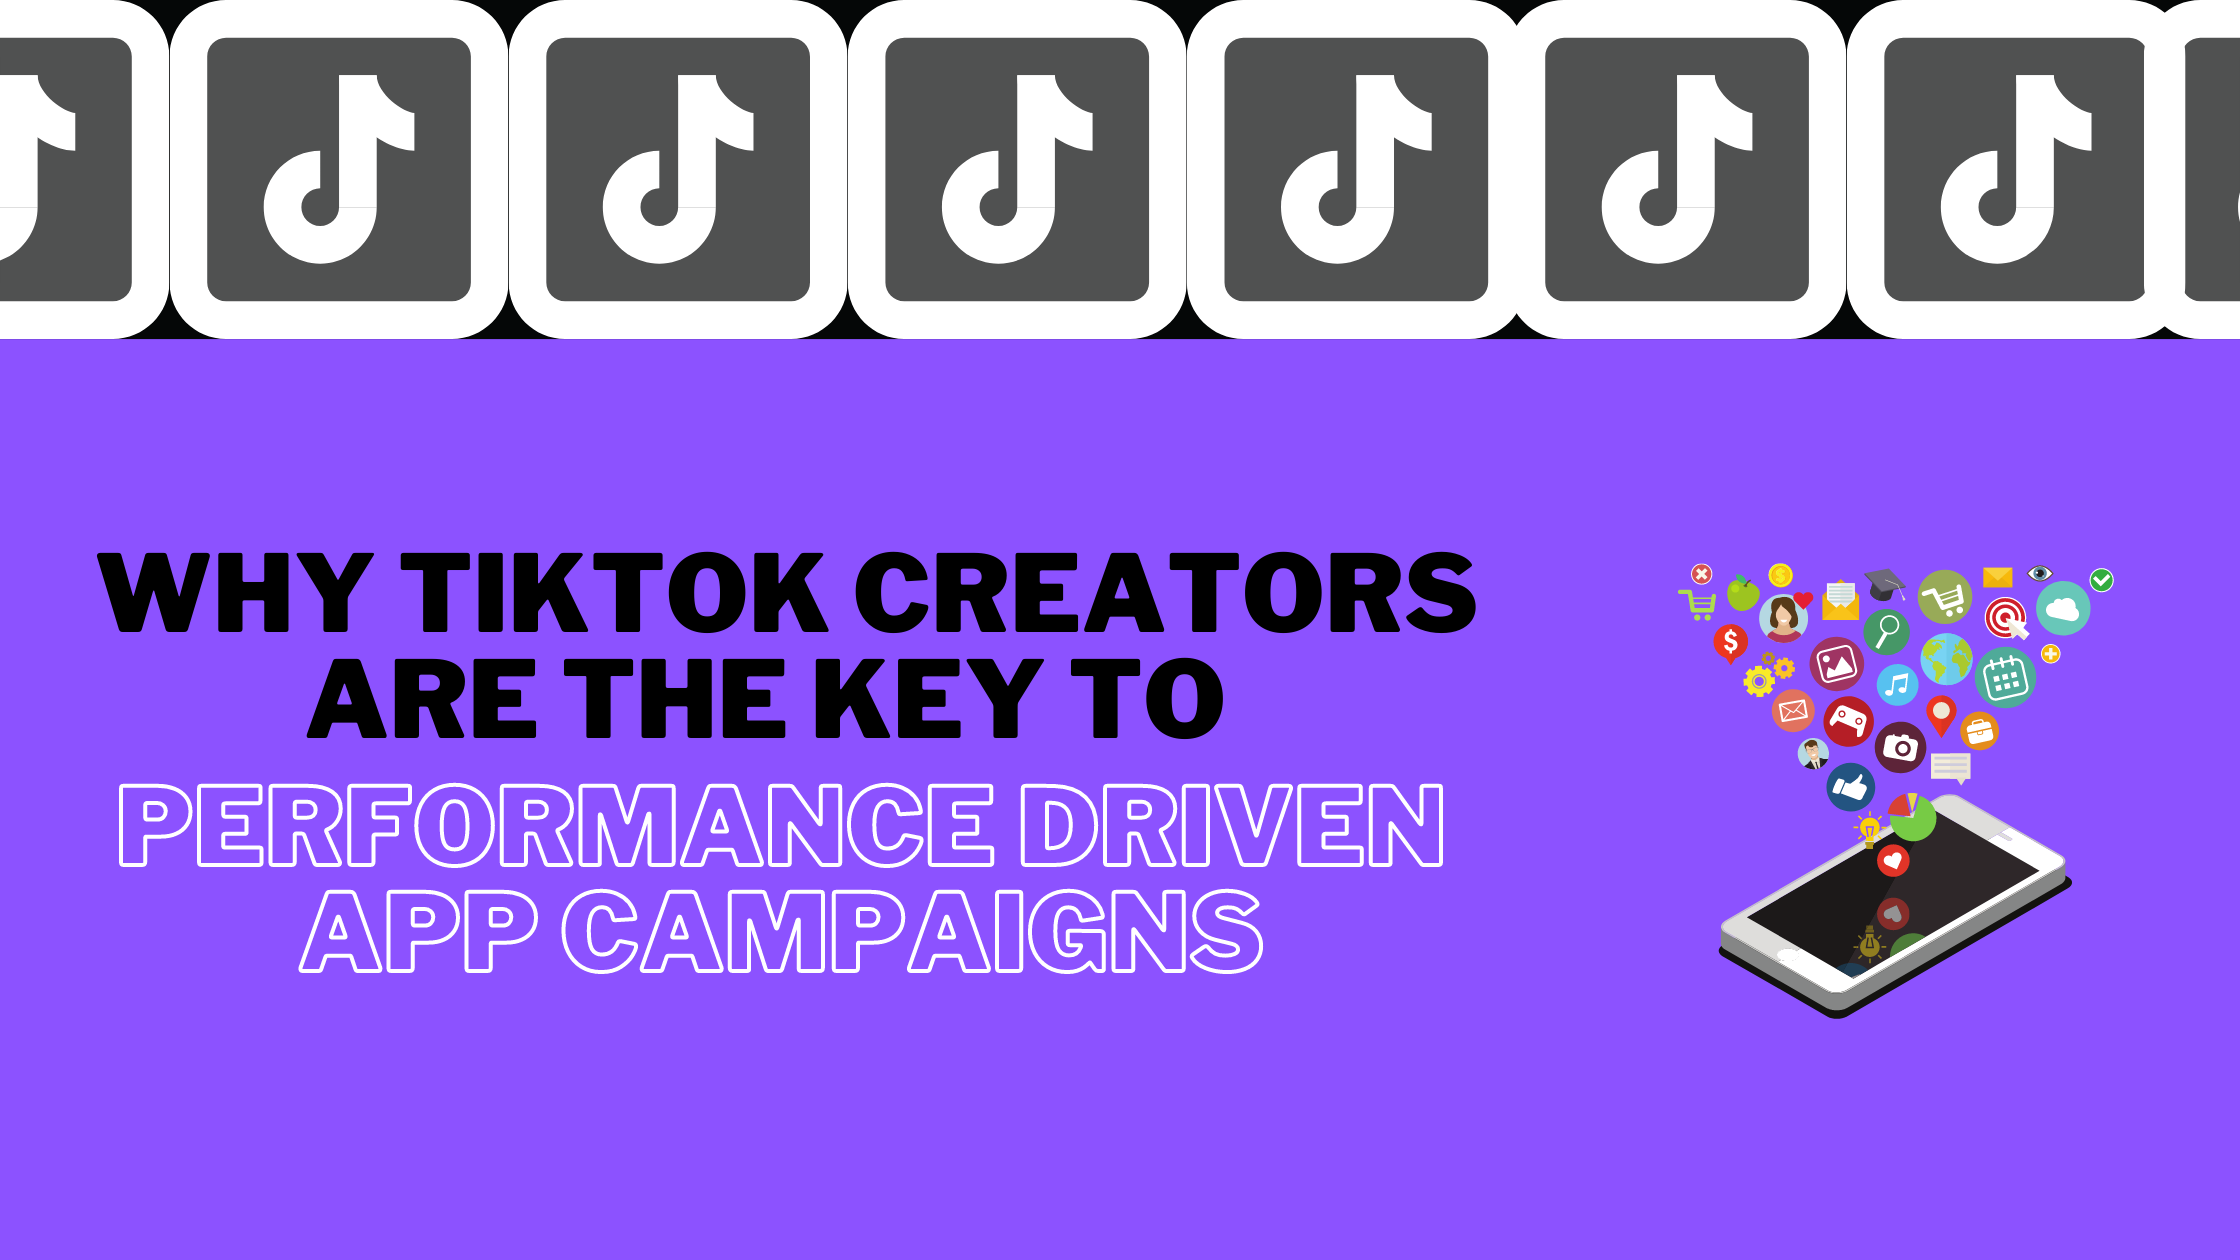 Why TikTok Creators Are The Key To Performance Driven App Campaigns